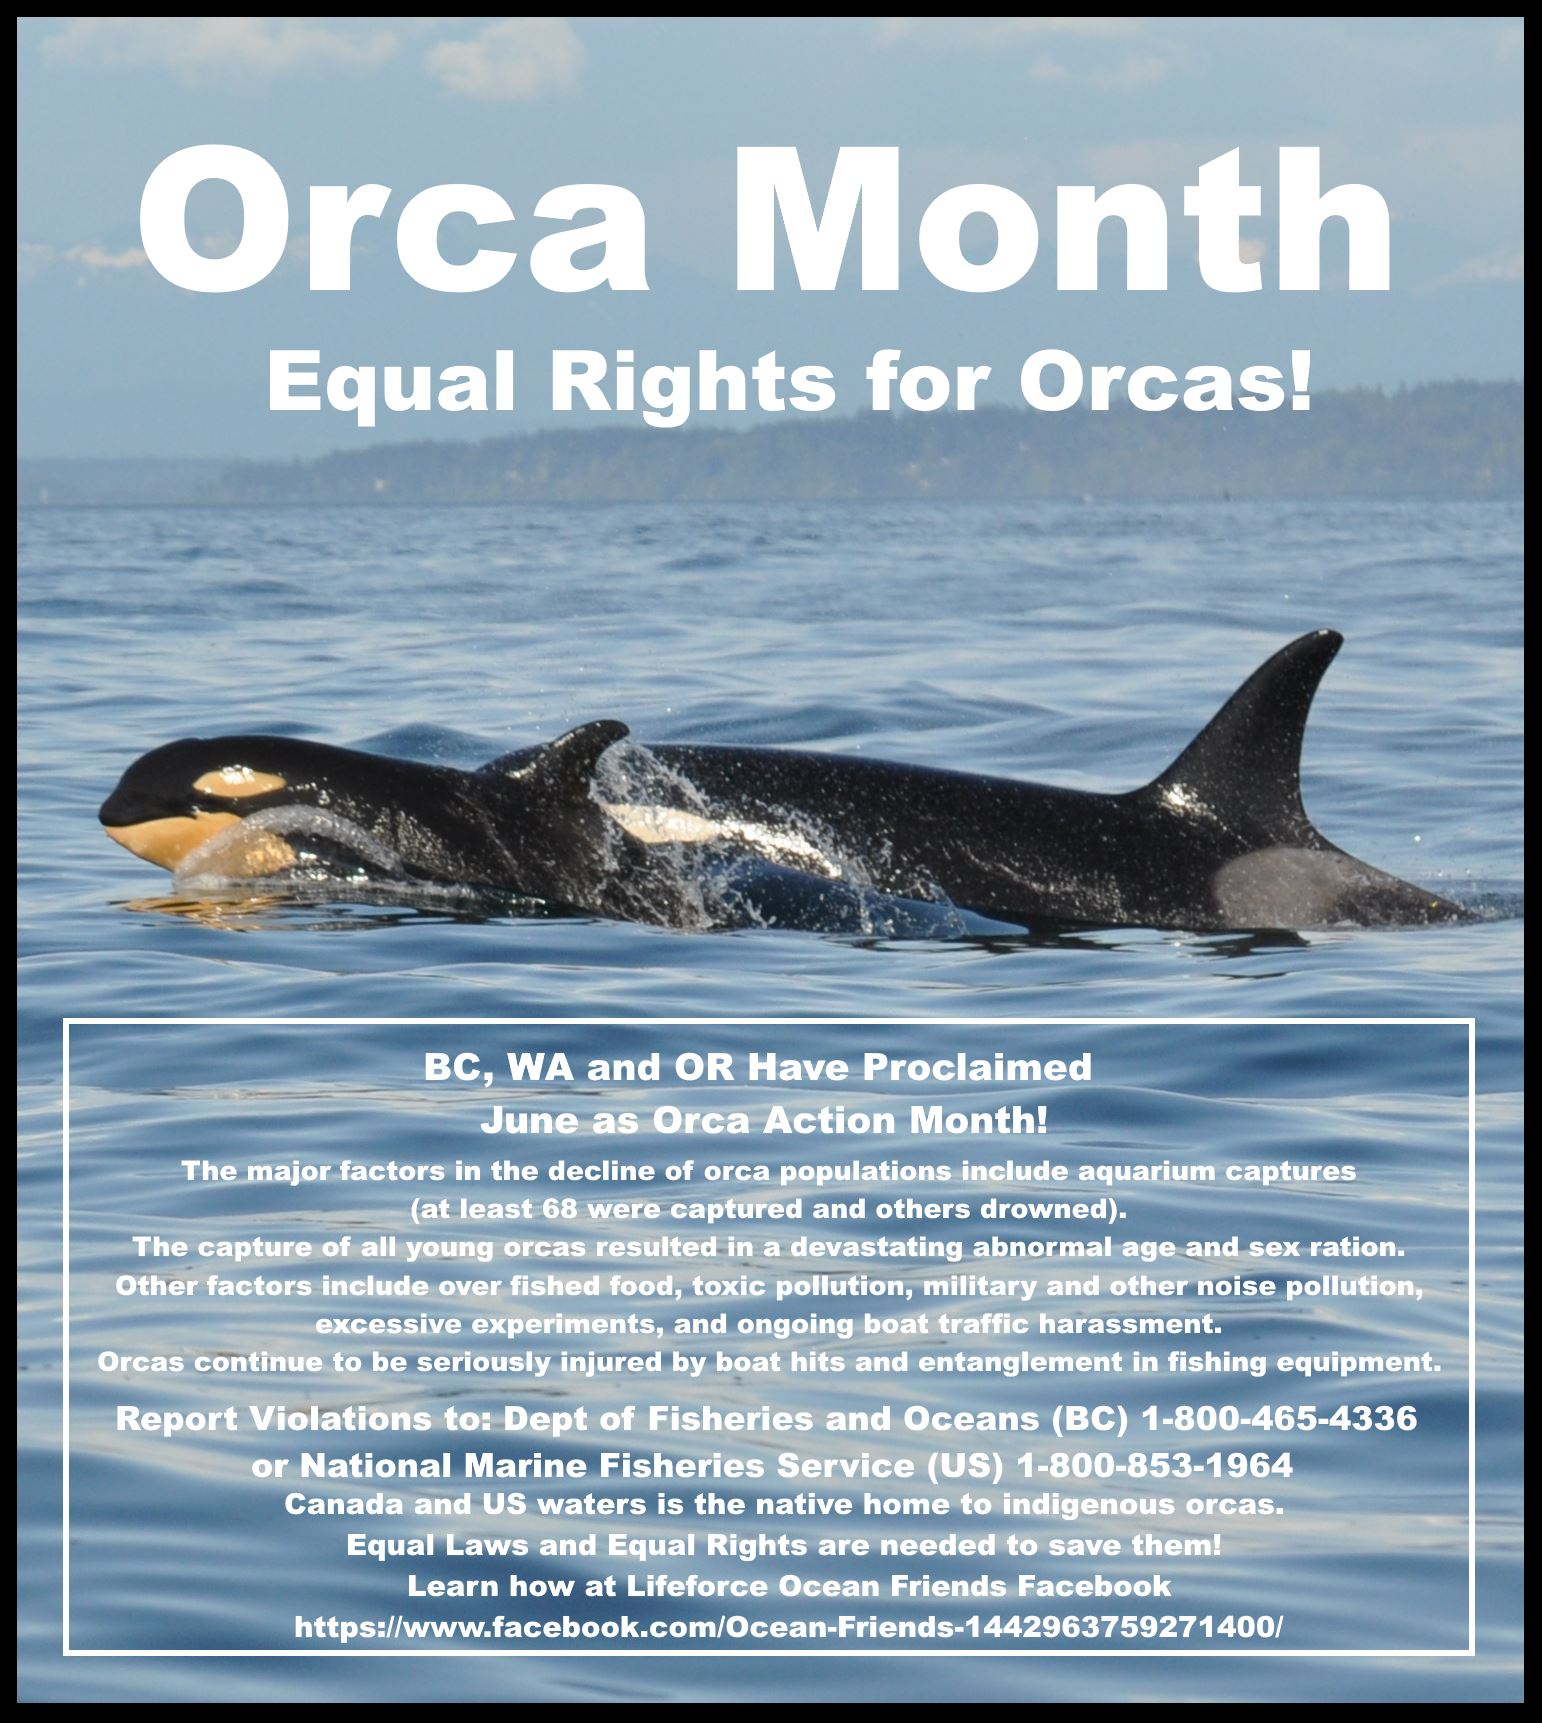 June 7th Update: Orca Action Month